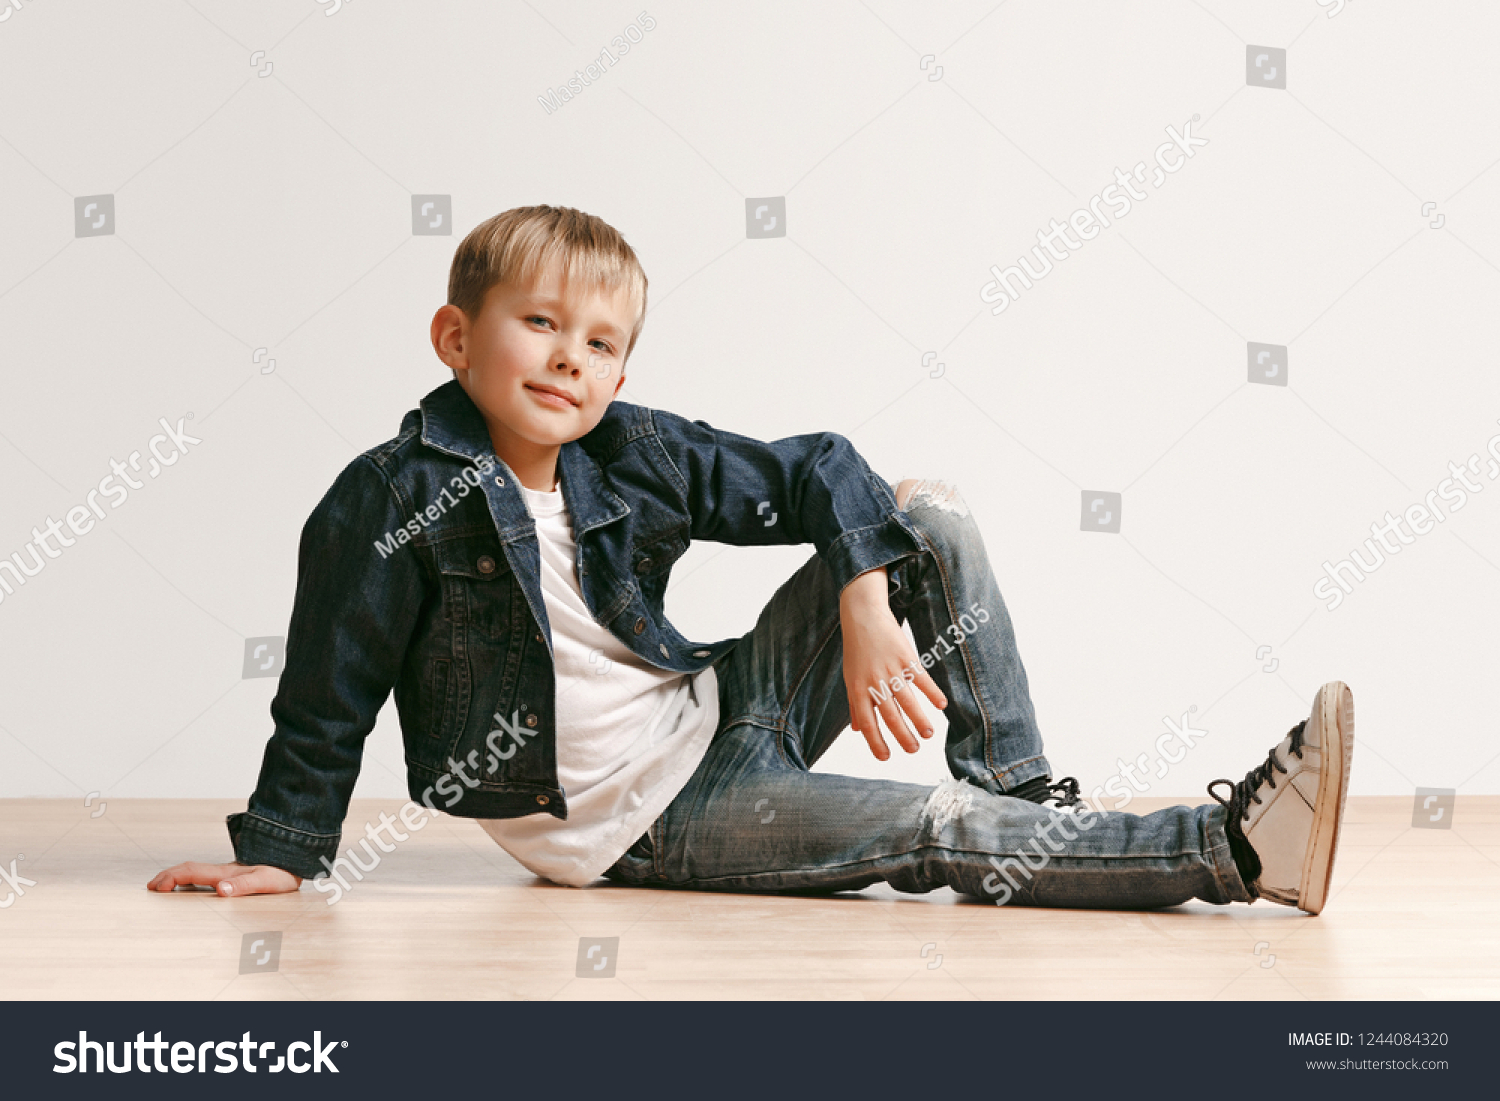 f94aa034f The portrait of cute little kid boy in stylish jeans clothes looking at  camera against white